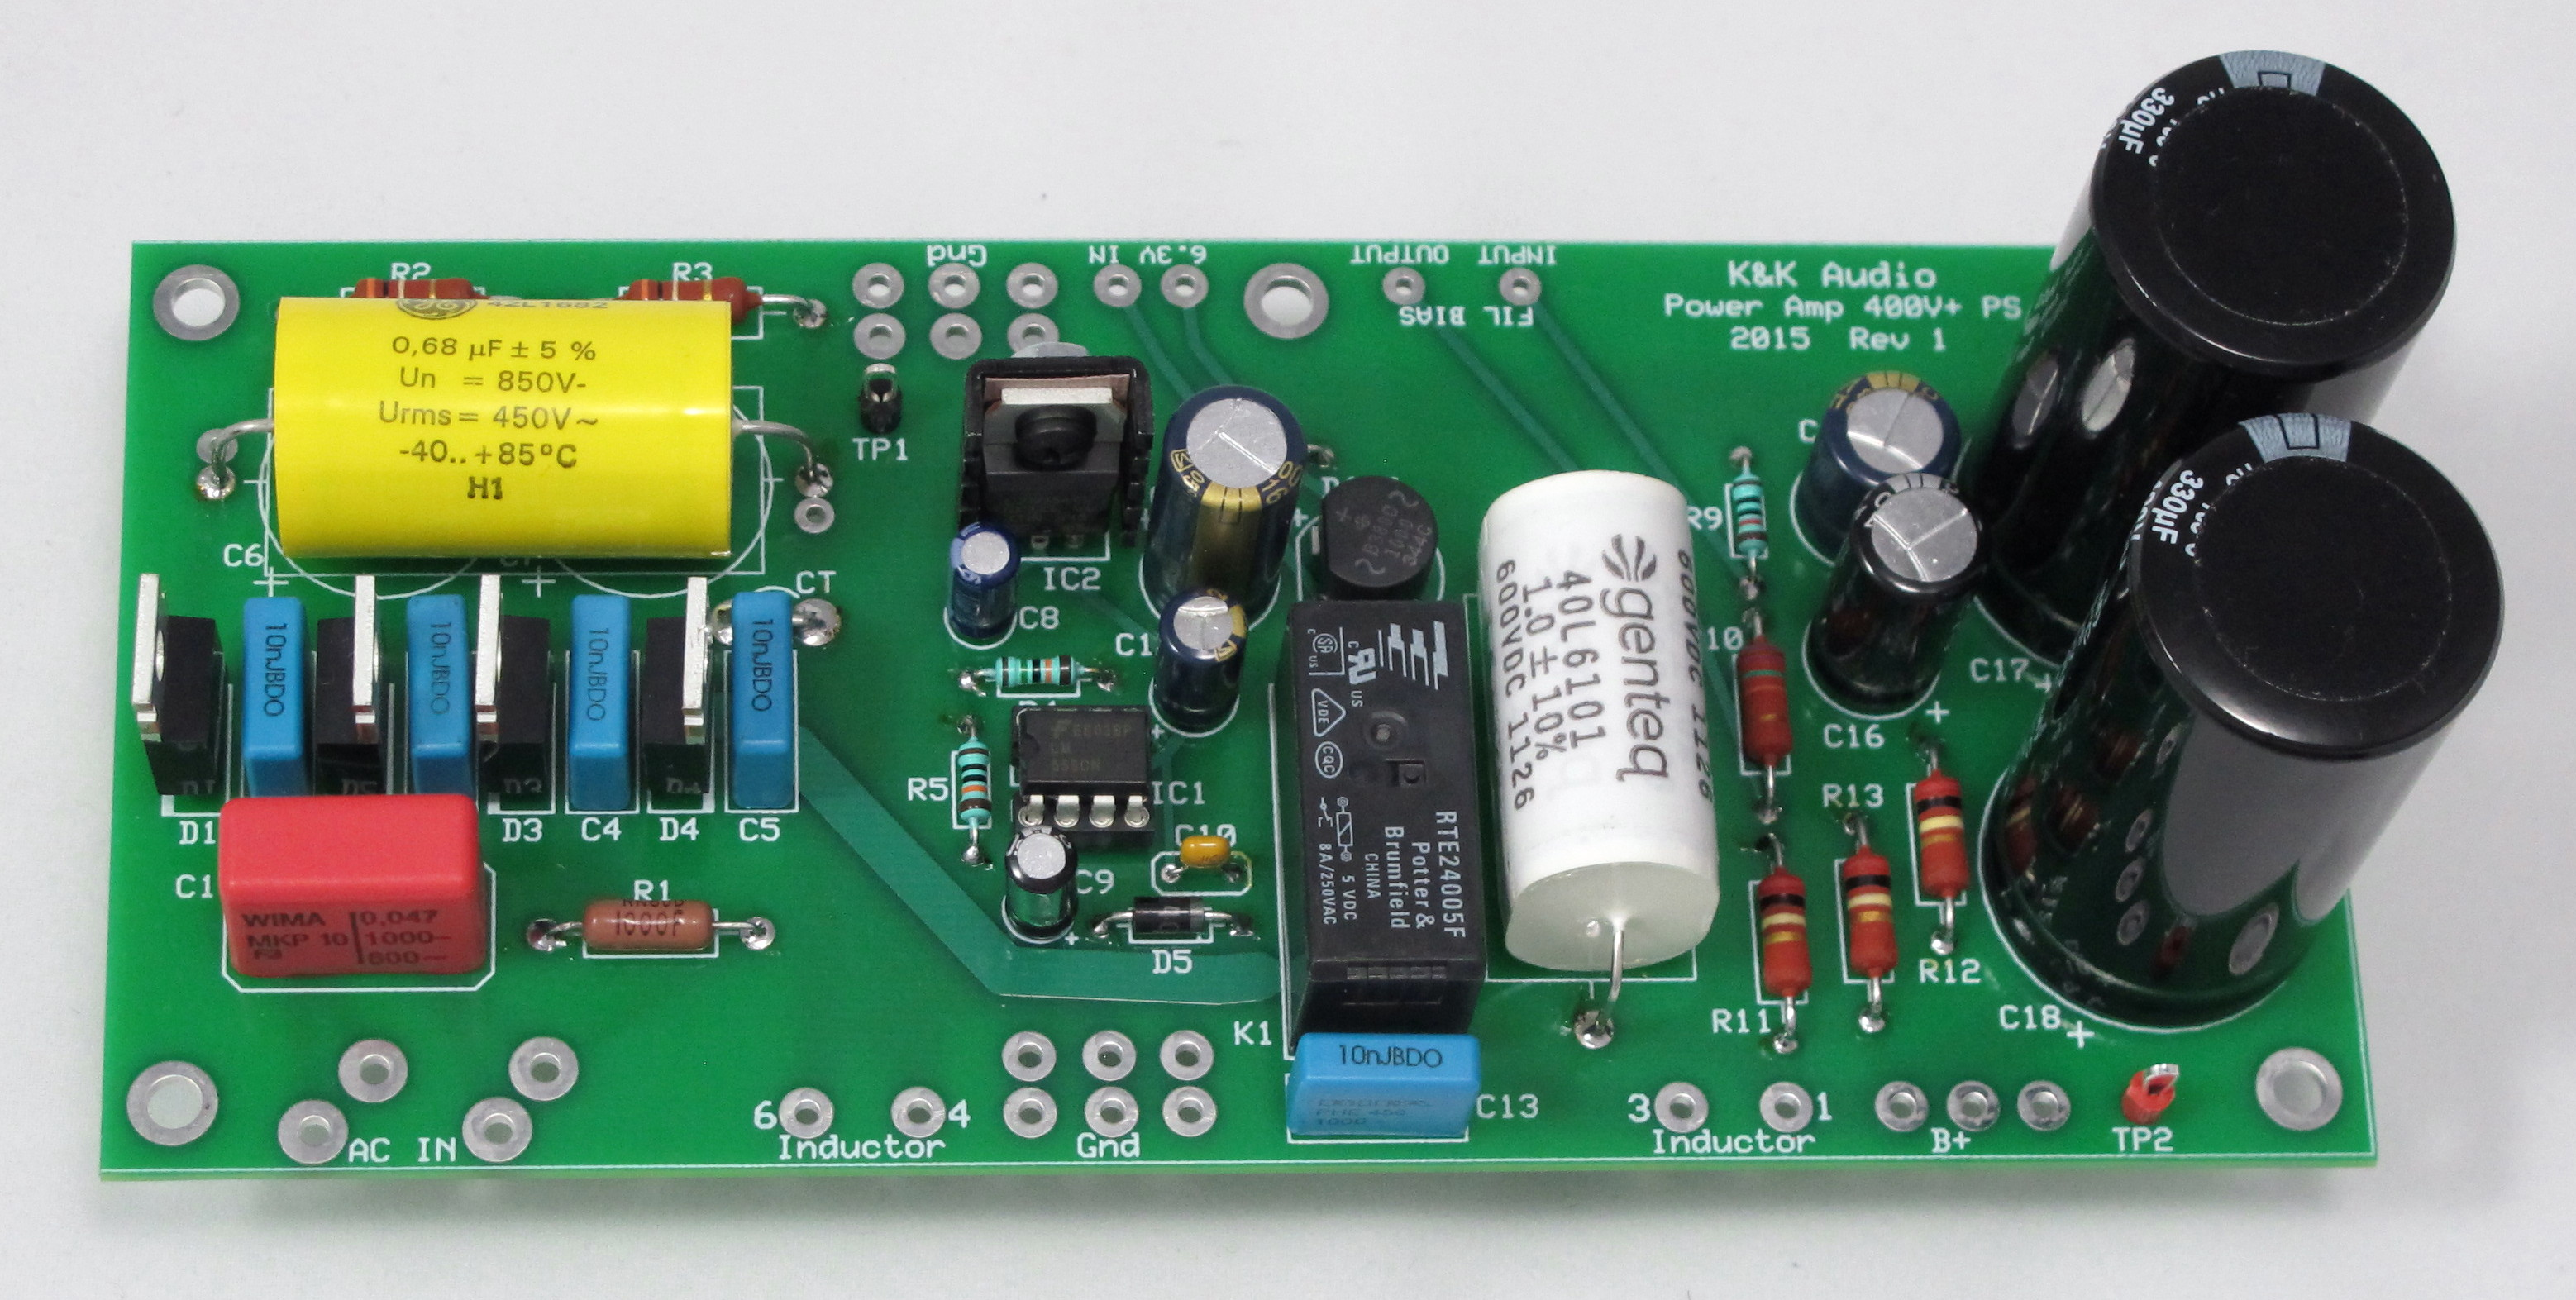 Kk Audio Power Amplifier Most High Voltage Supplies Use A Circuit Called Previousnext